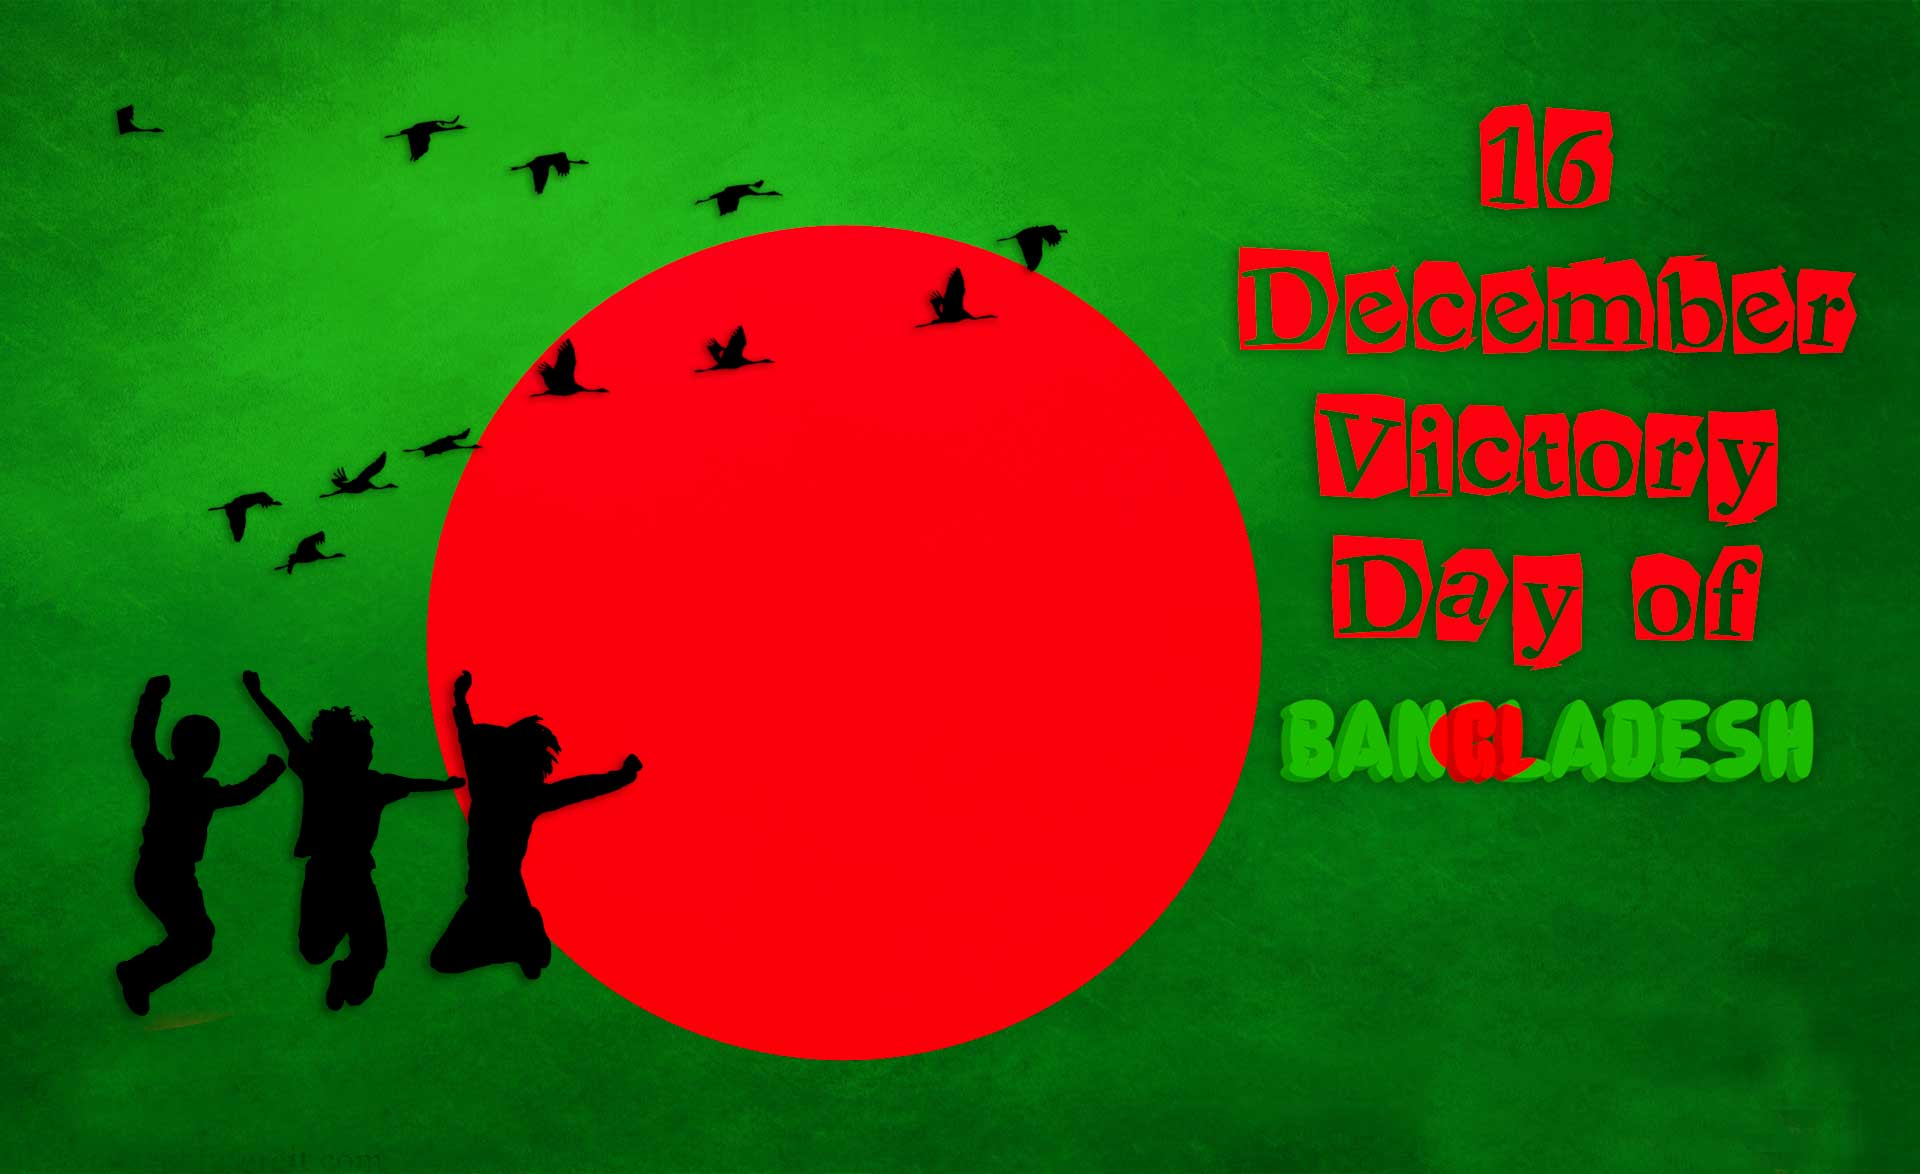 16 December Victory Day Wishes Picture